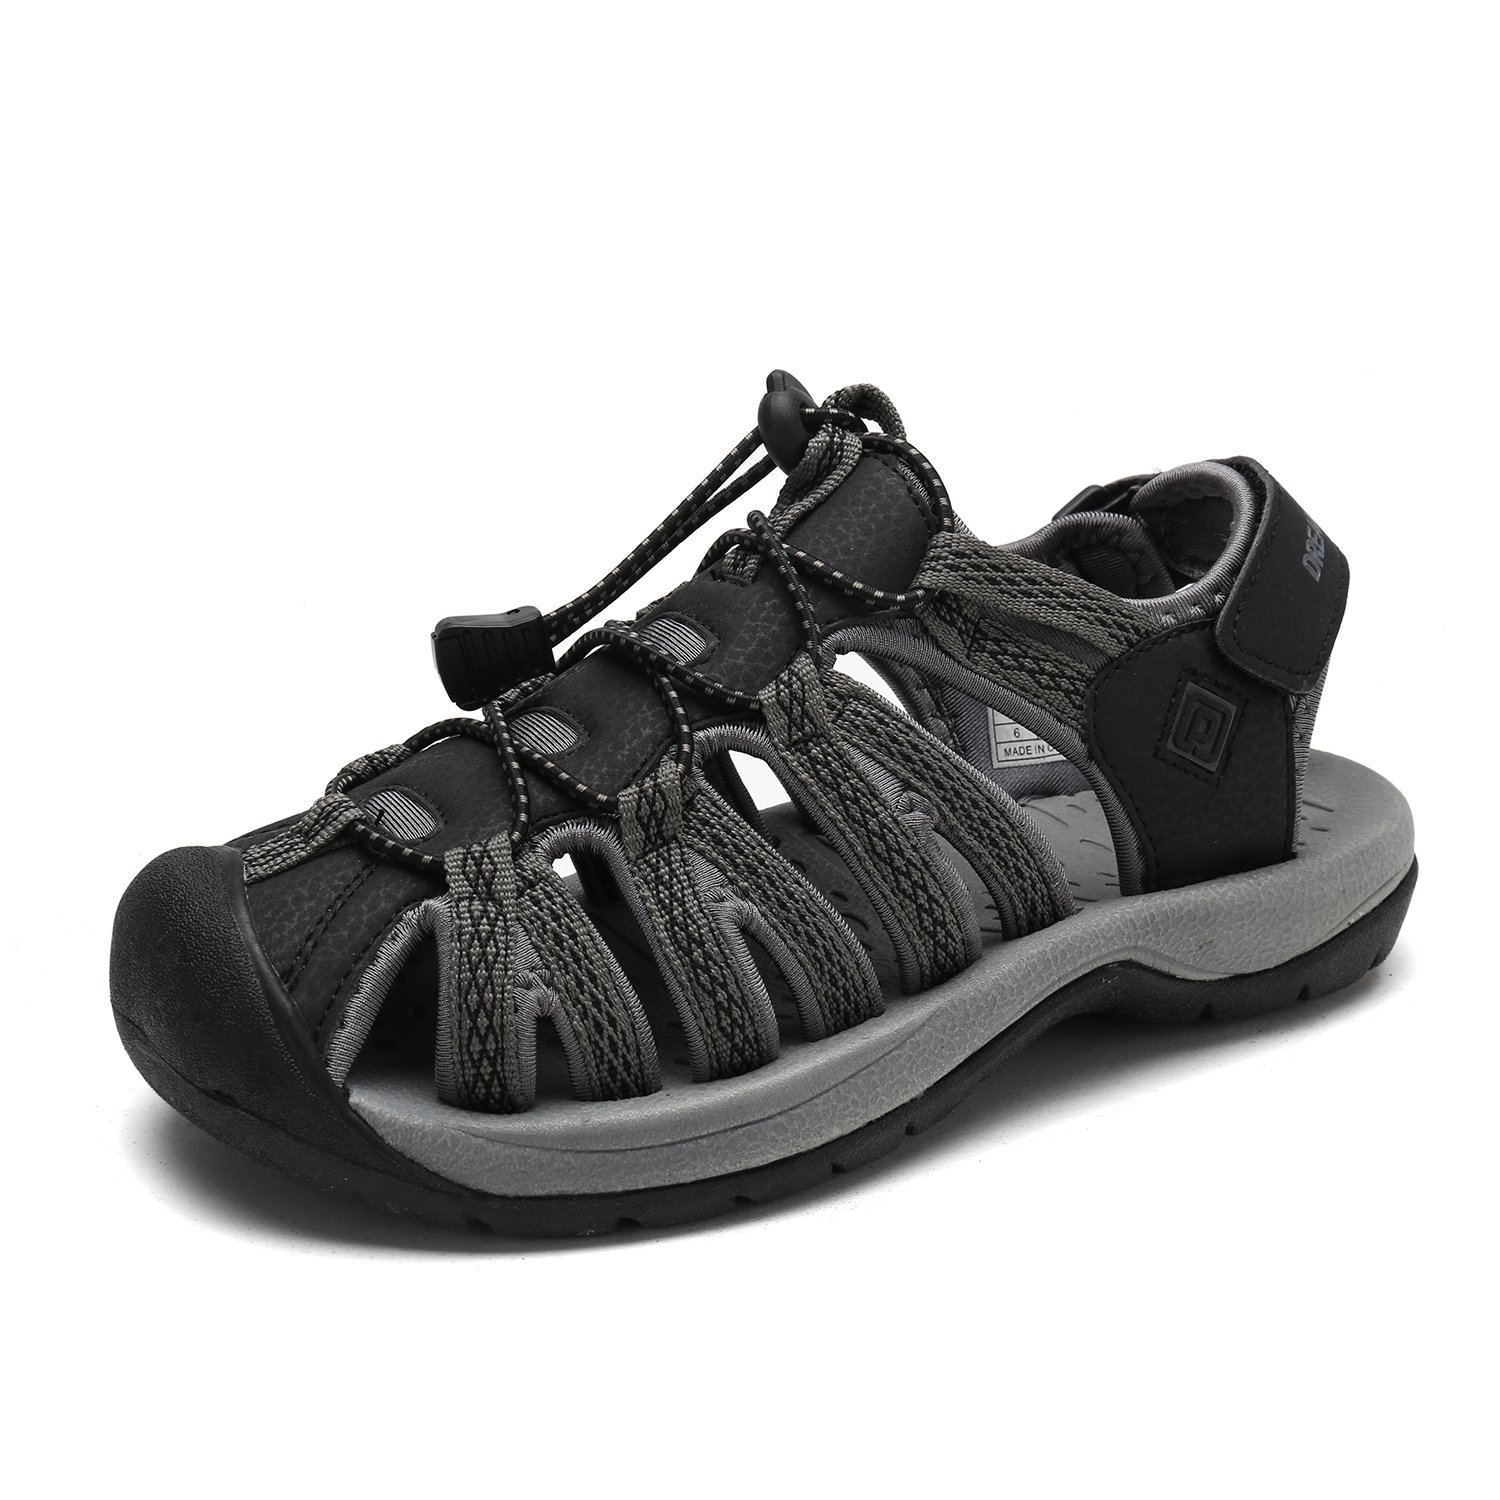 DREAM PAIRS Women's 160912-W Adventurous Summer Outdoor Sandals B077GCPKYG 7.5 B(M) US|Black Dk.grey